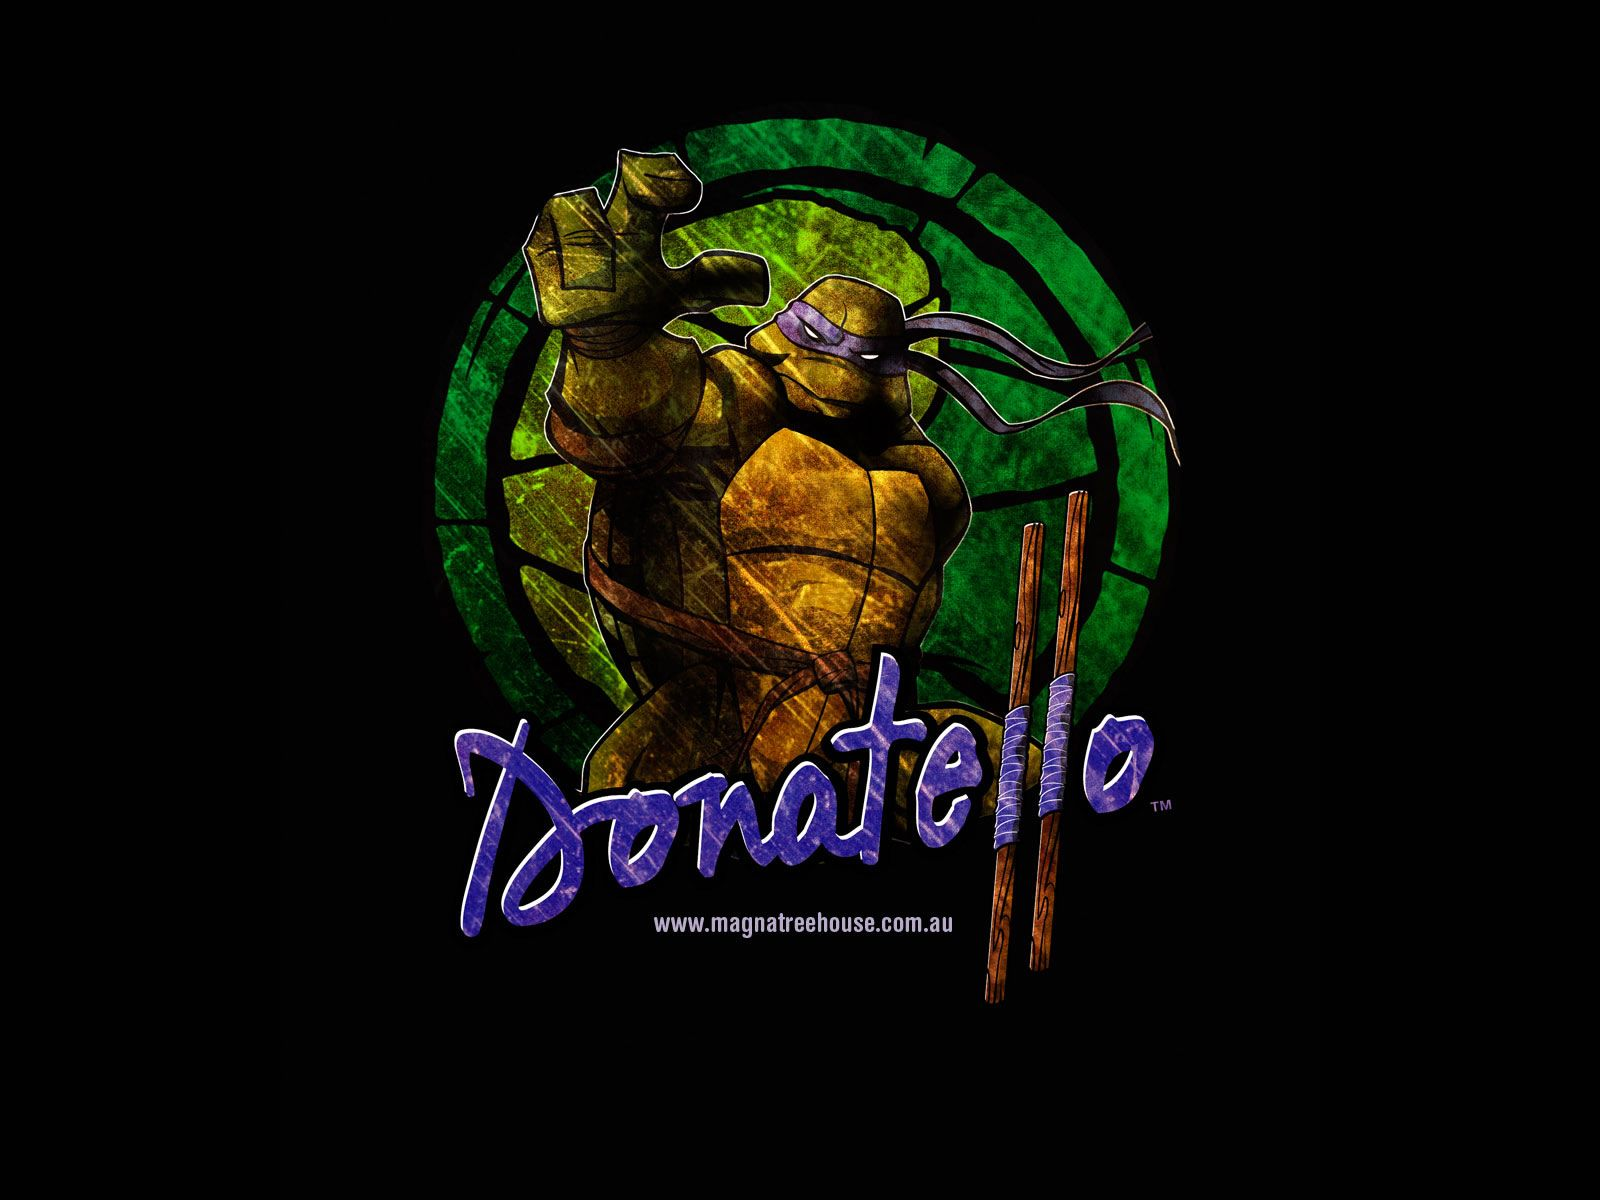 Teenage Mutant Ninja Turtles Donatello-Wallpaper-tmnt-255776_1600_1200.jpg